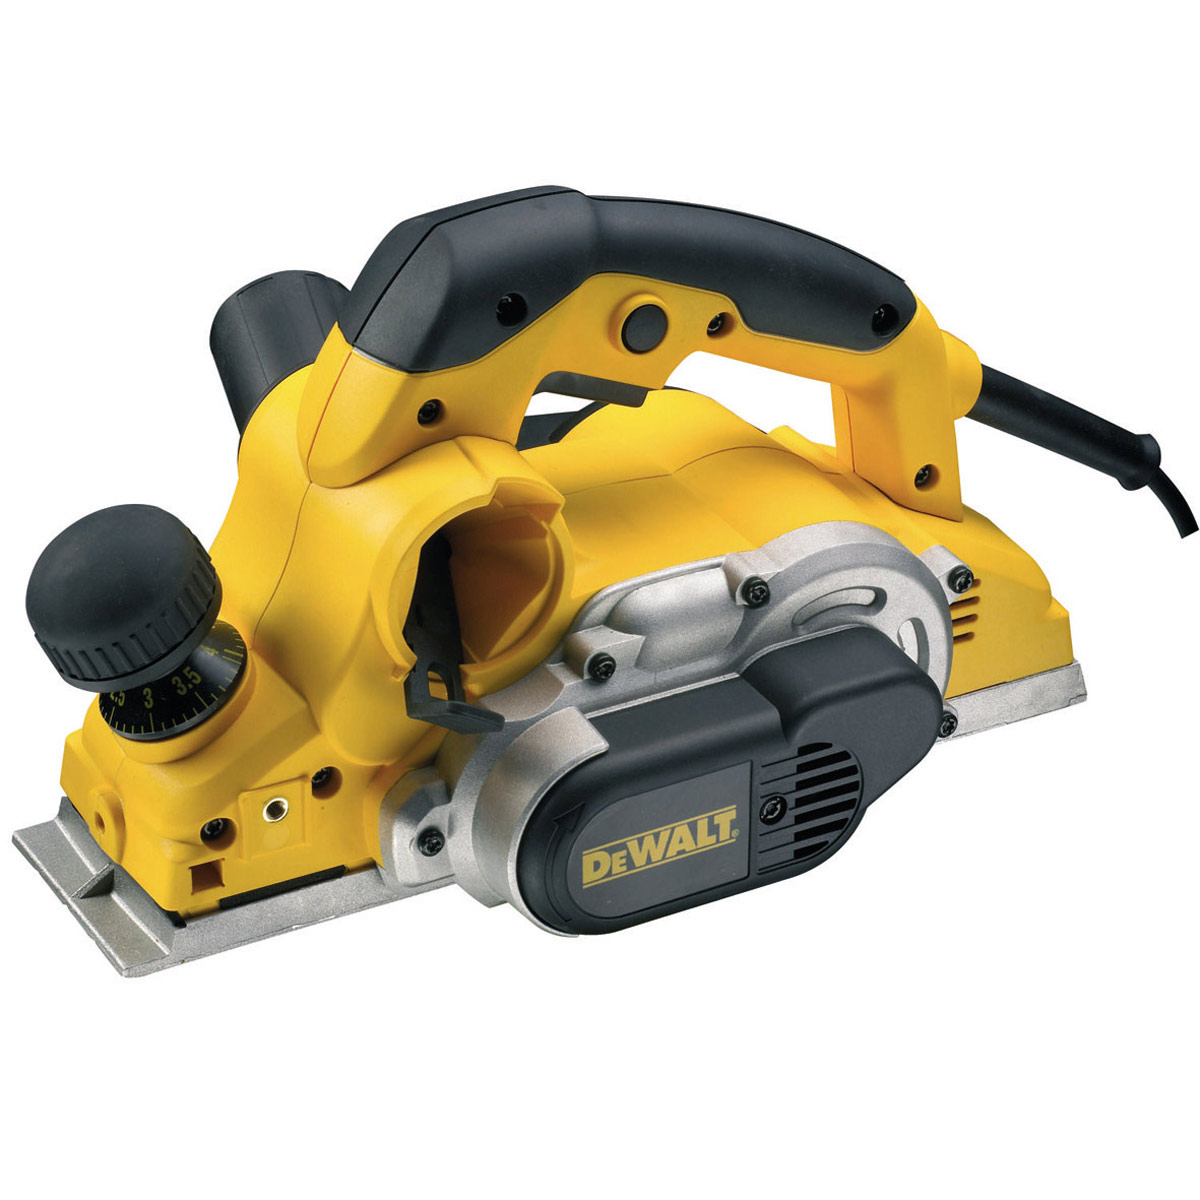 DEWALT D26500K 4MM PLANER 1050W 240V (KIT BOX VERSION)